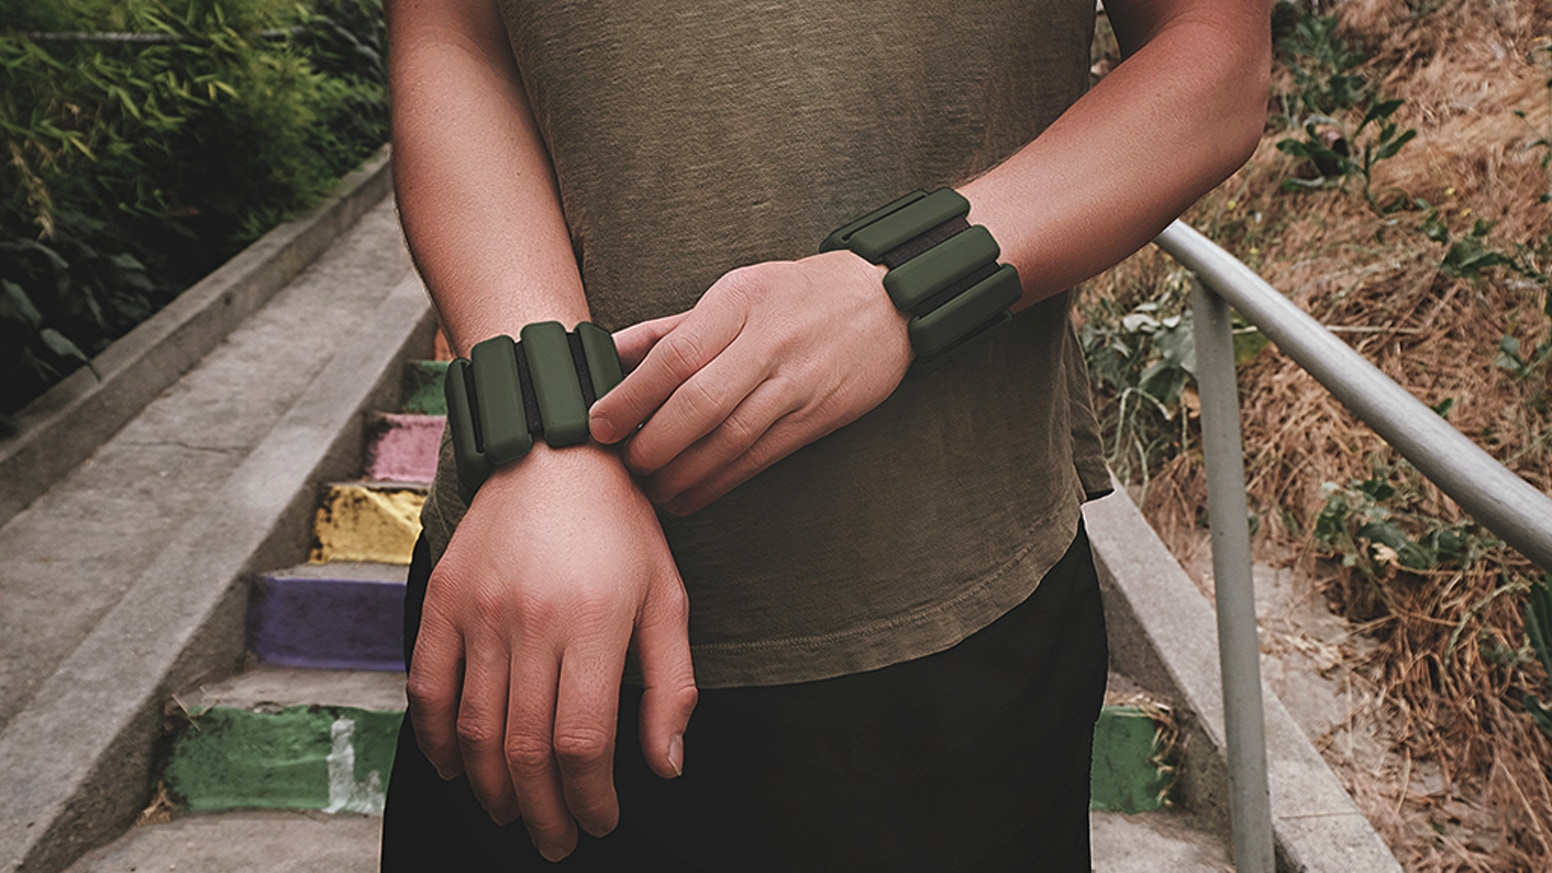 Increase heart-rate, burn fat, and build muscle. Designed for yoga, running, cycling, hiking, you name it. A perfect travel companion.